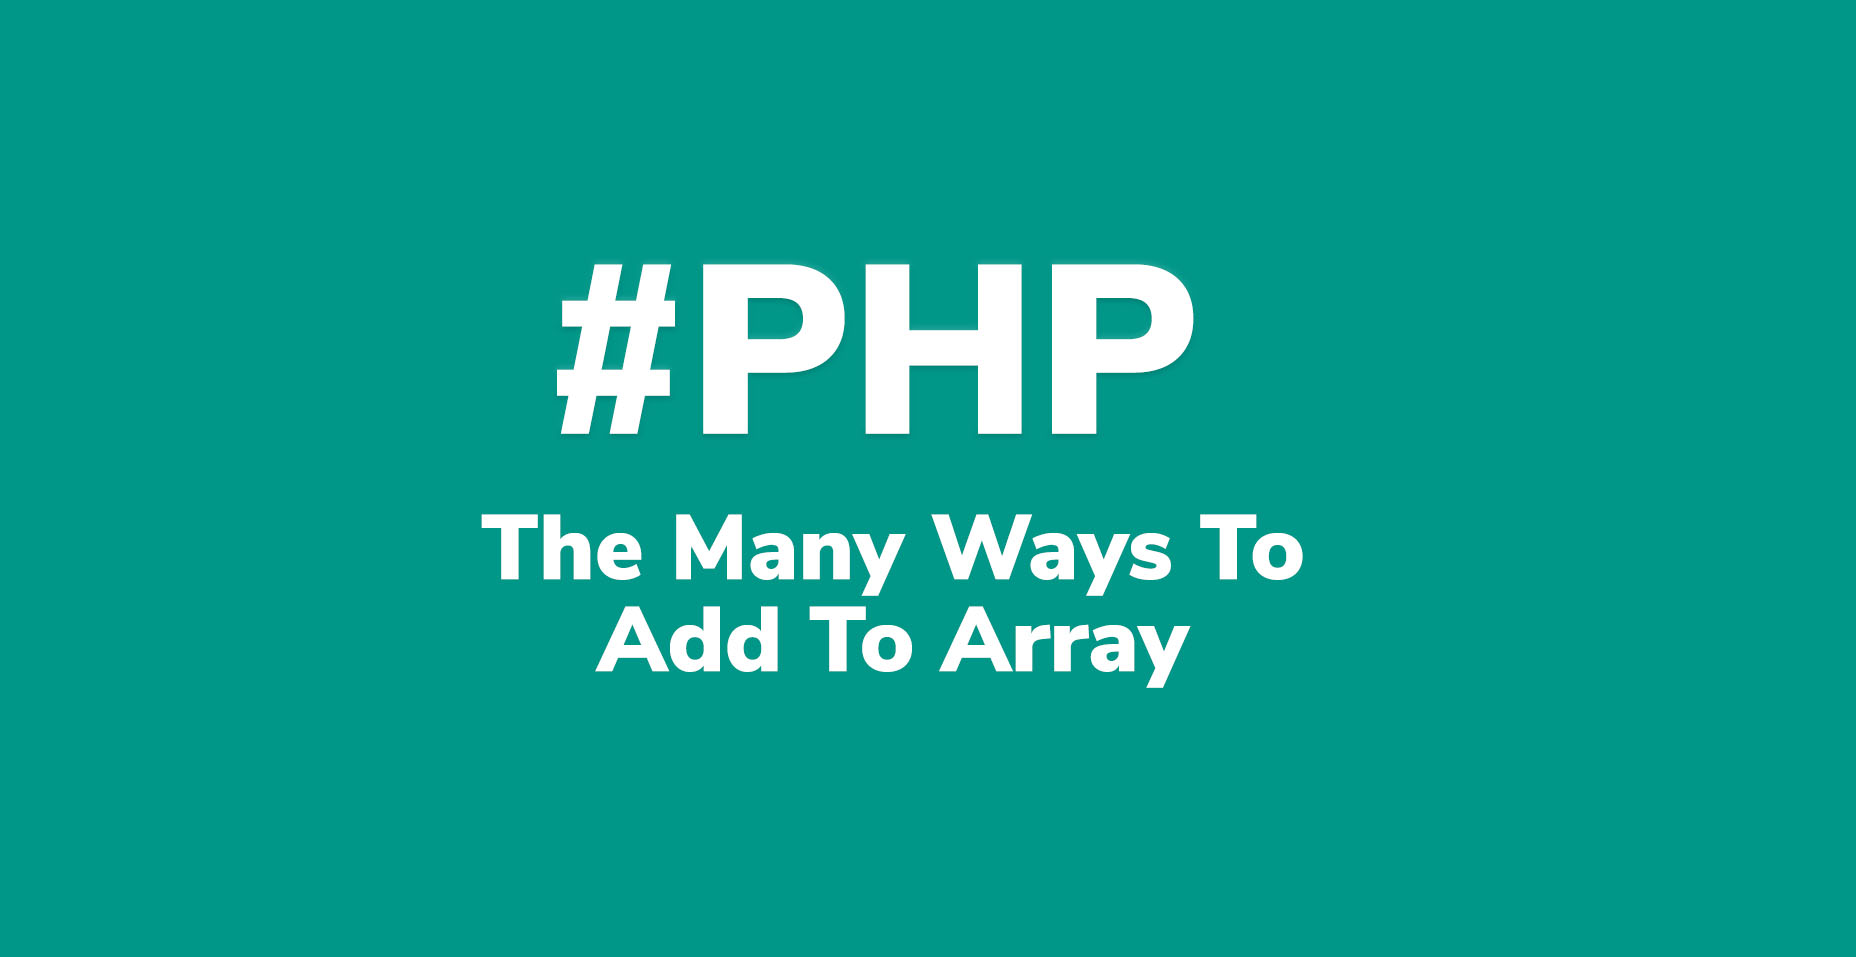 How To Add To Array In PHP | Code Wall